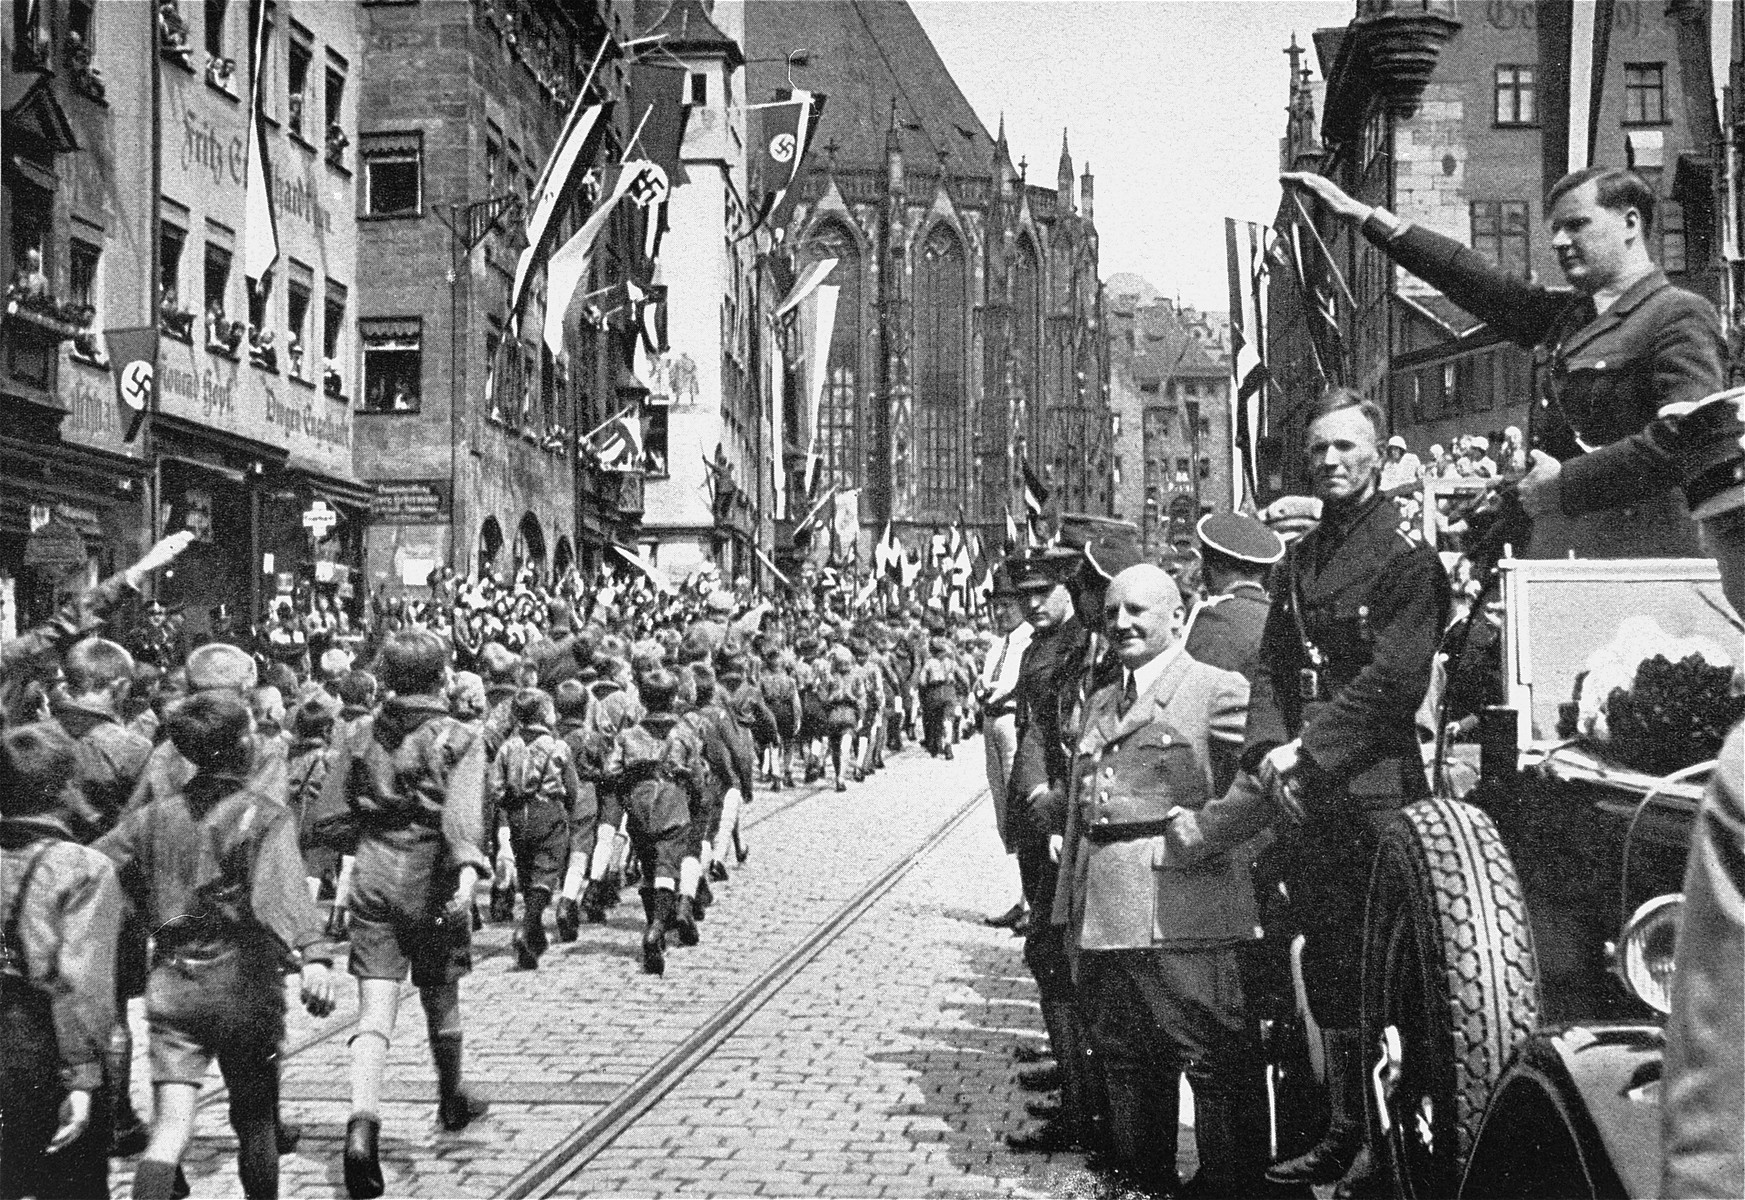 """Baldur von Schirach (saluting), leader of the Hitler Youth, and Julius Streicher (in light-colored jacket), editor of the antisemitic newspaper, """"Der Stuermer,"""" review a parade of Hitler Youth in Nuremberg."""